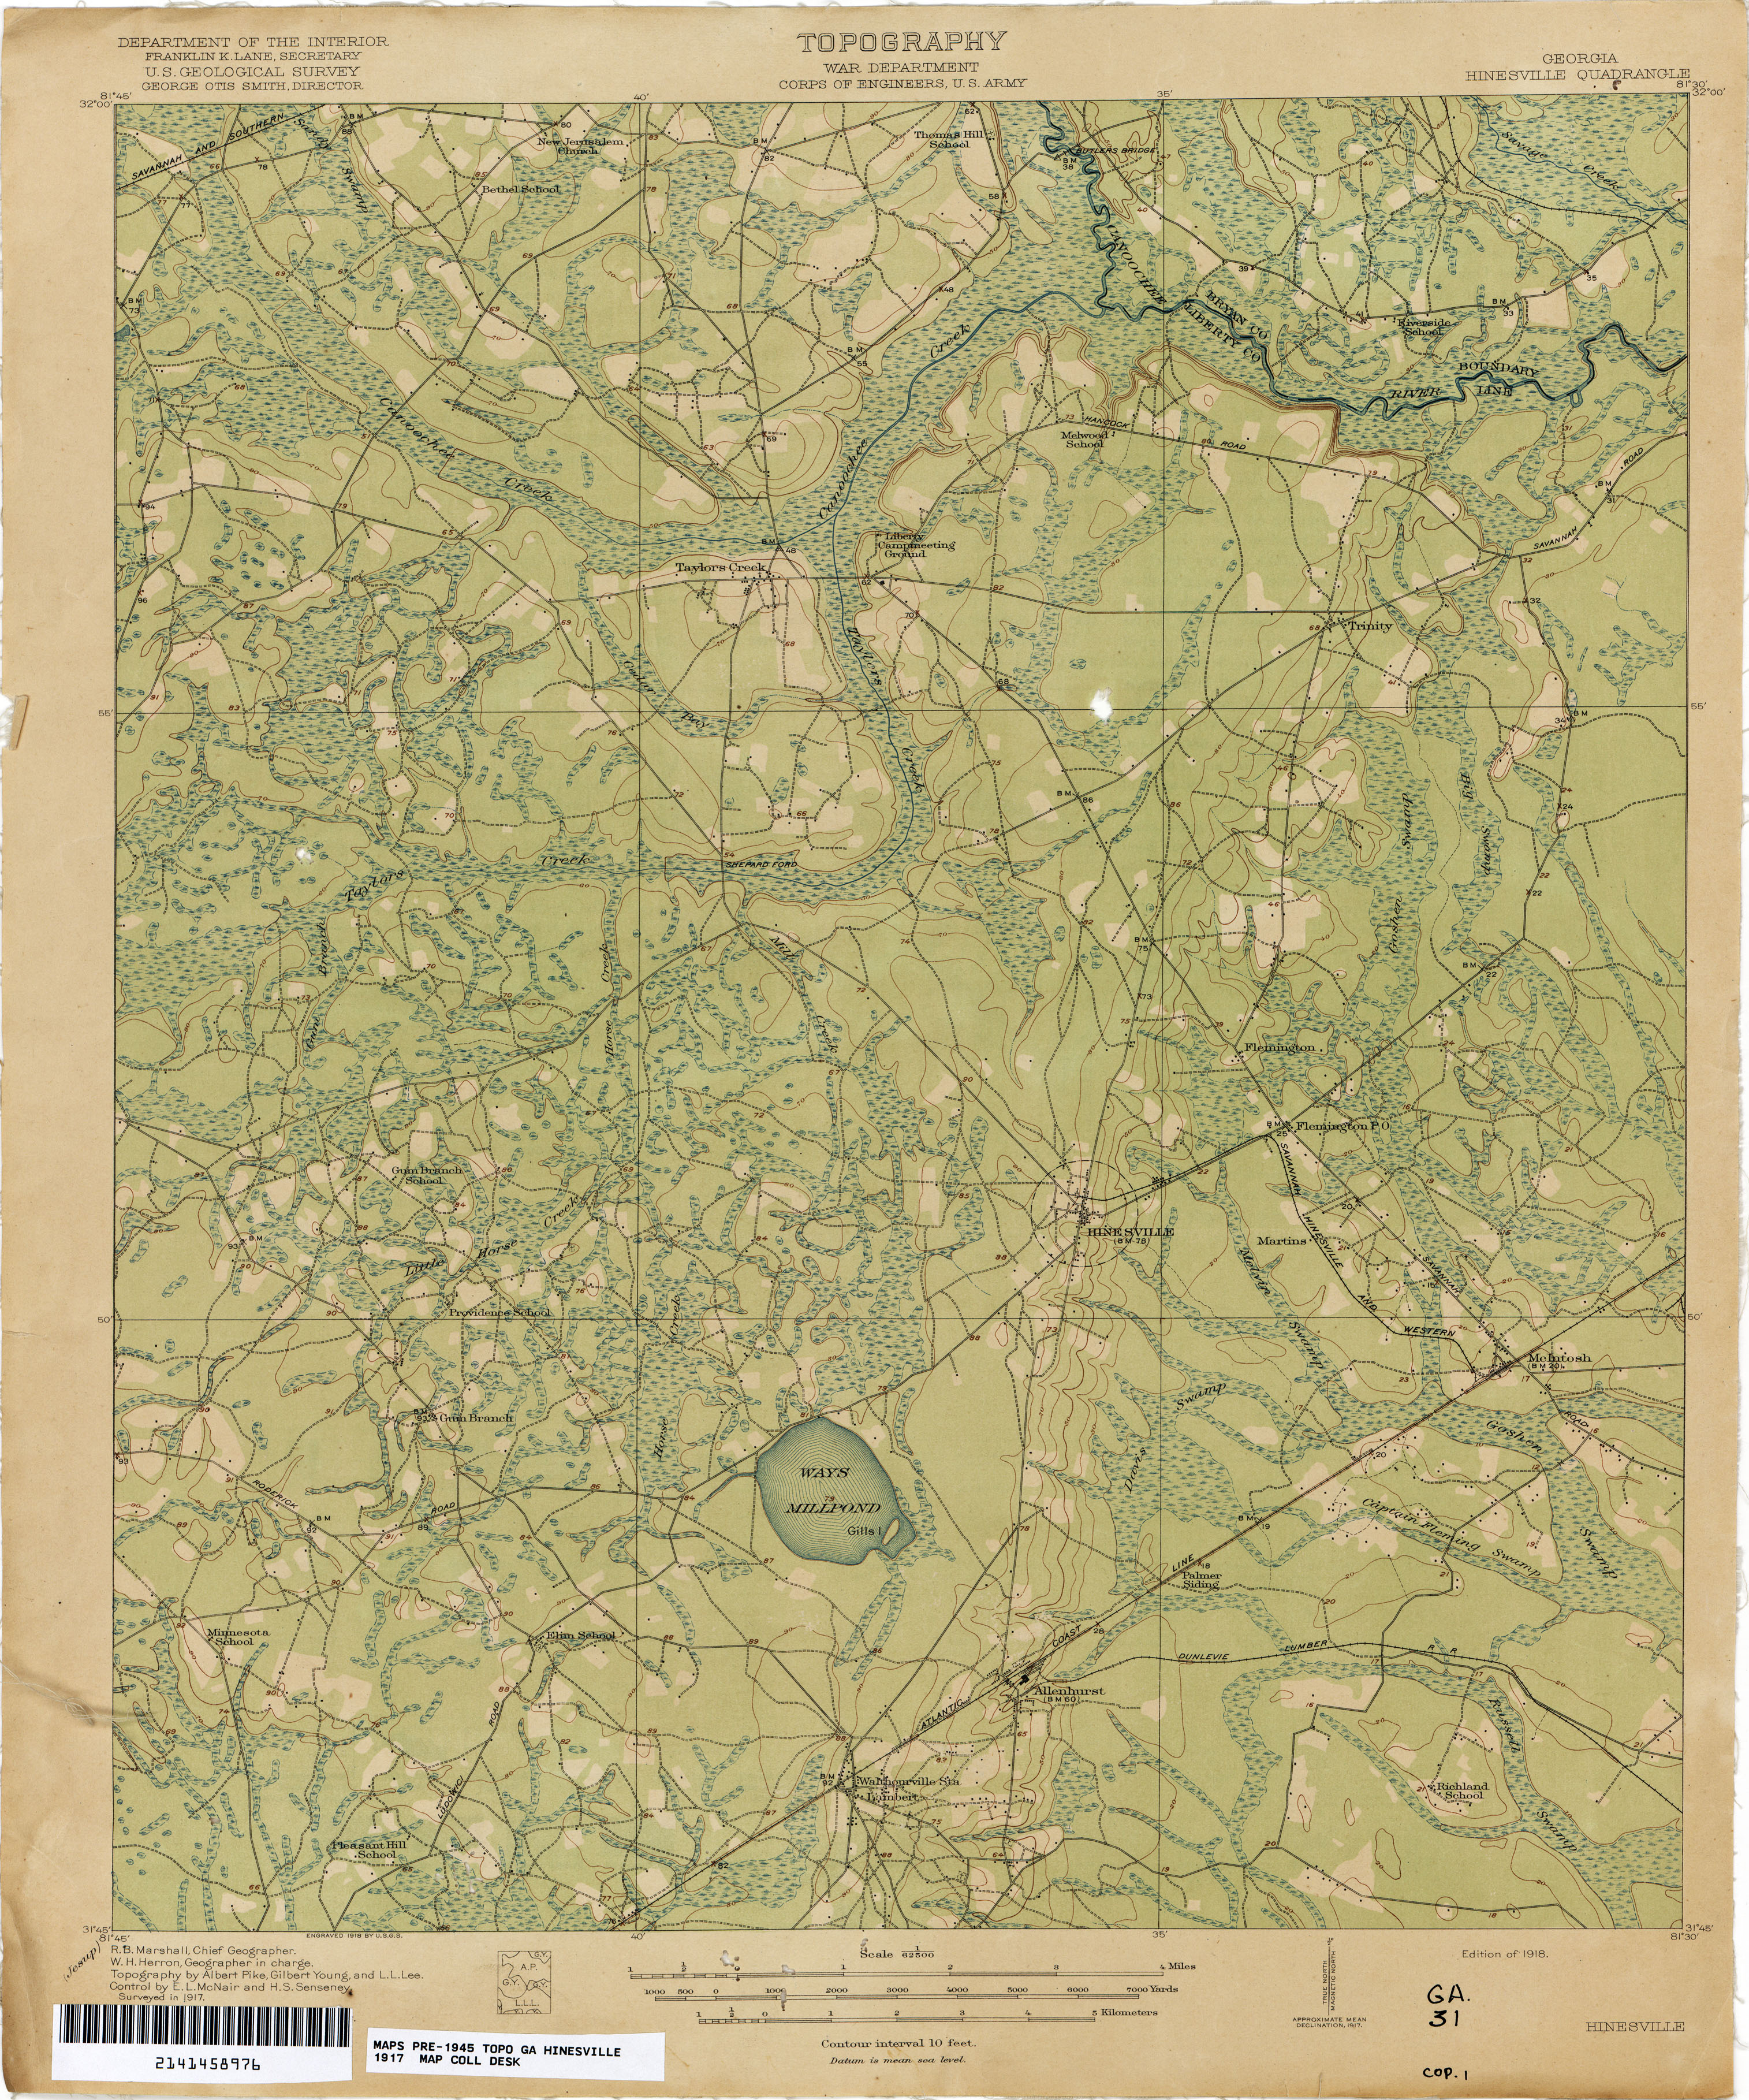 Georgia Historical Topographic Maps - Perry-Castañeda Map Collection on topographic map gulf of mexico, topographic map art, topographic map stream, topographic map alluvial fan, topographic map valley, topographic map river, topographic map drainage divide, topographic map ocean, topographic map bay, topographic map island, topographic map ridge, topographic map weathering, topographic map hill,